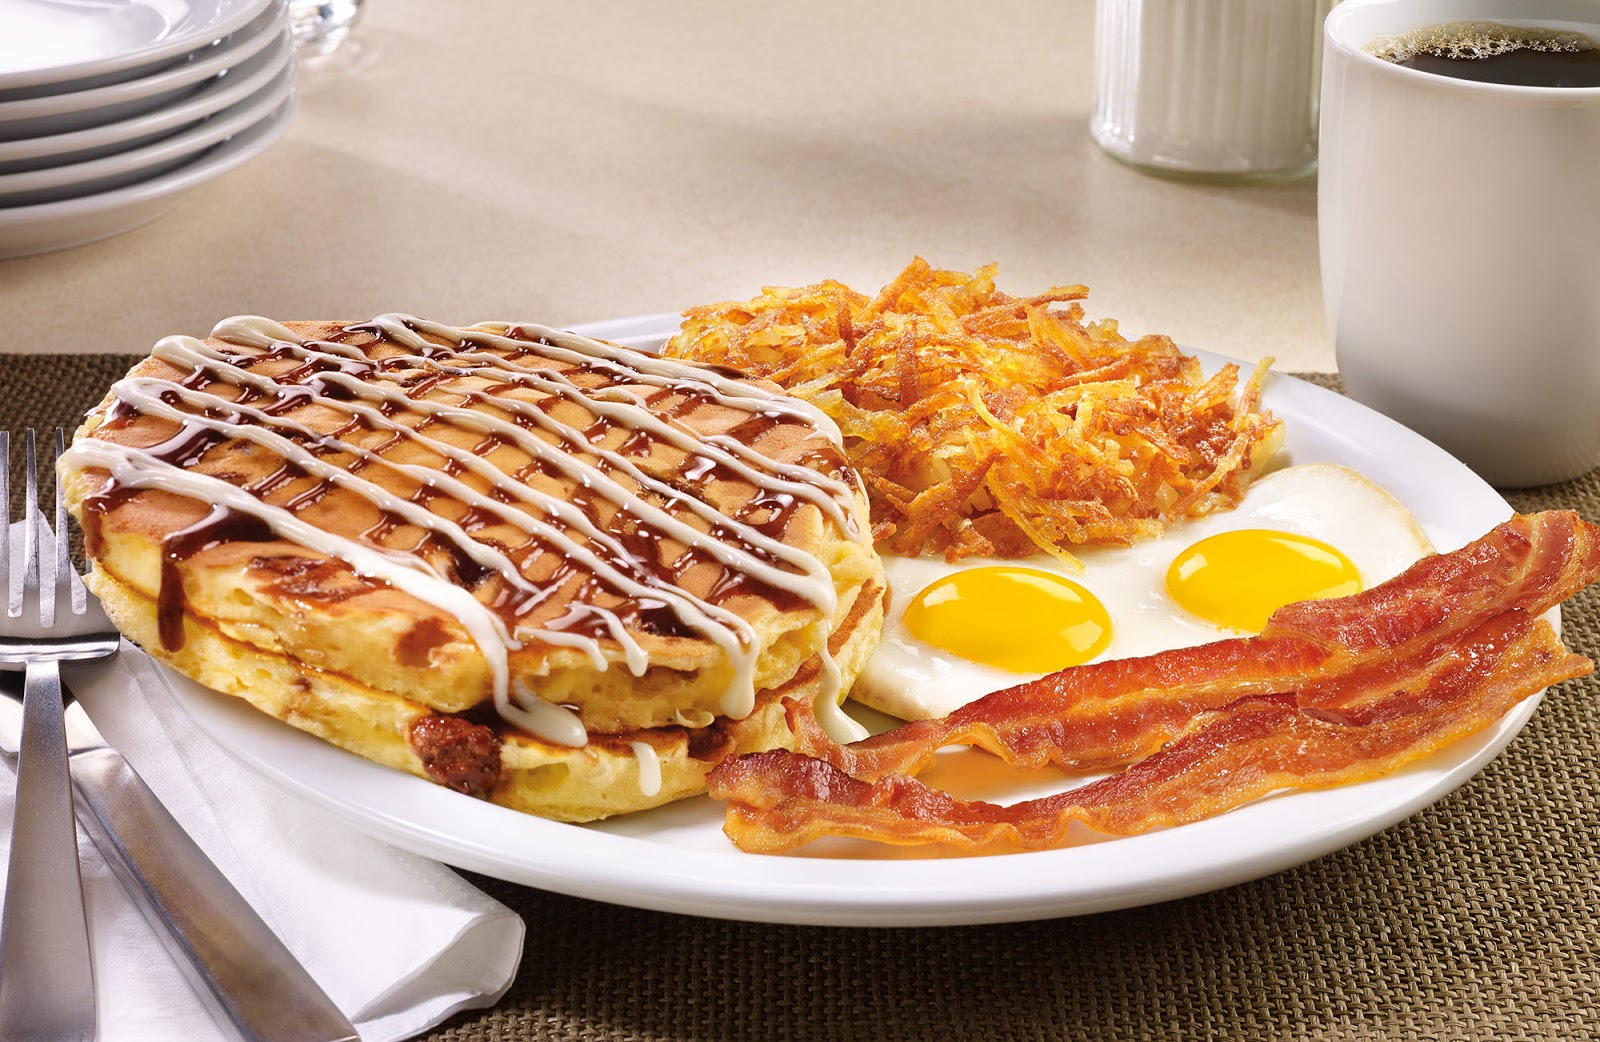 Day 2 of #12Days OfYeah is for a $75.- gift card for Denny's